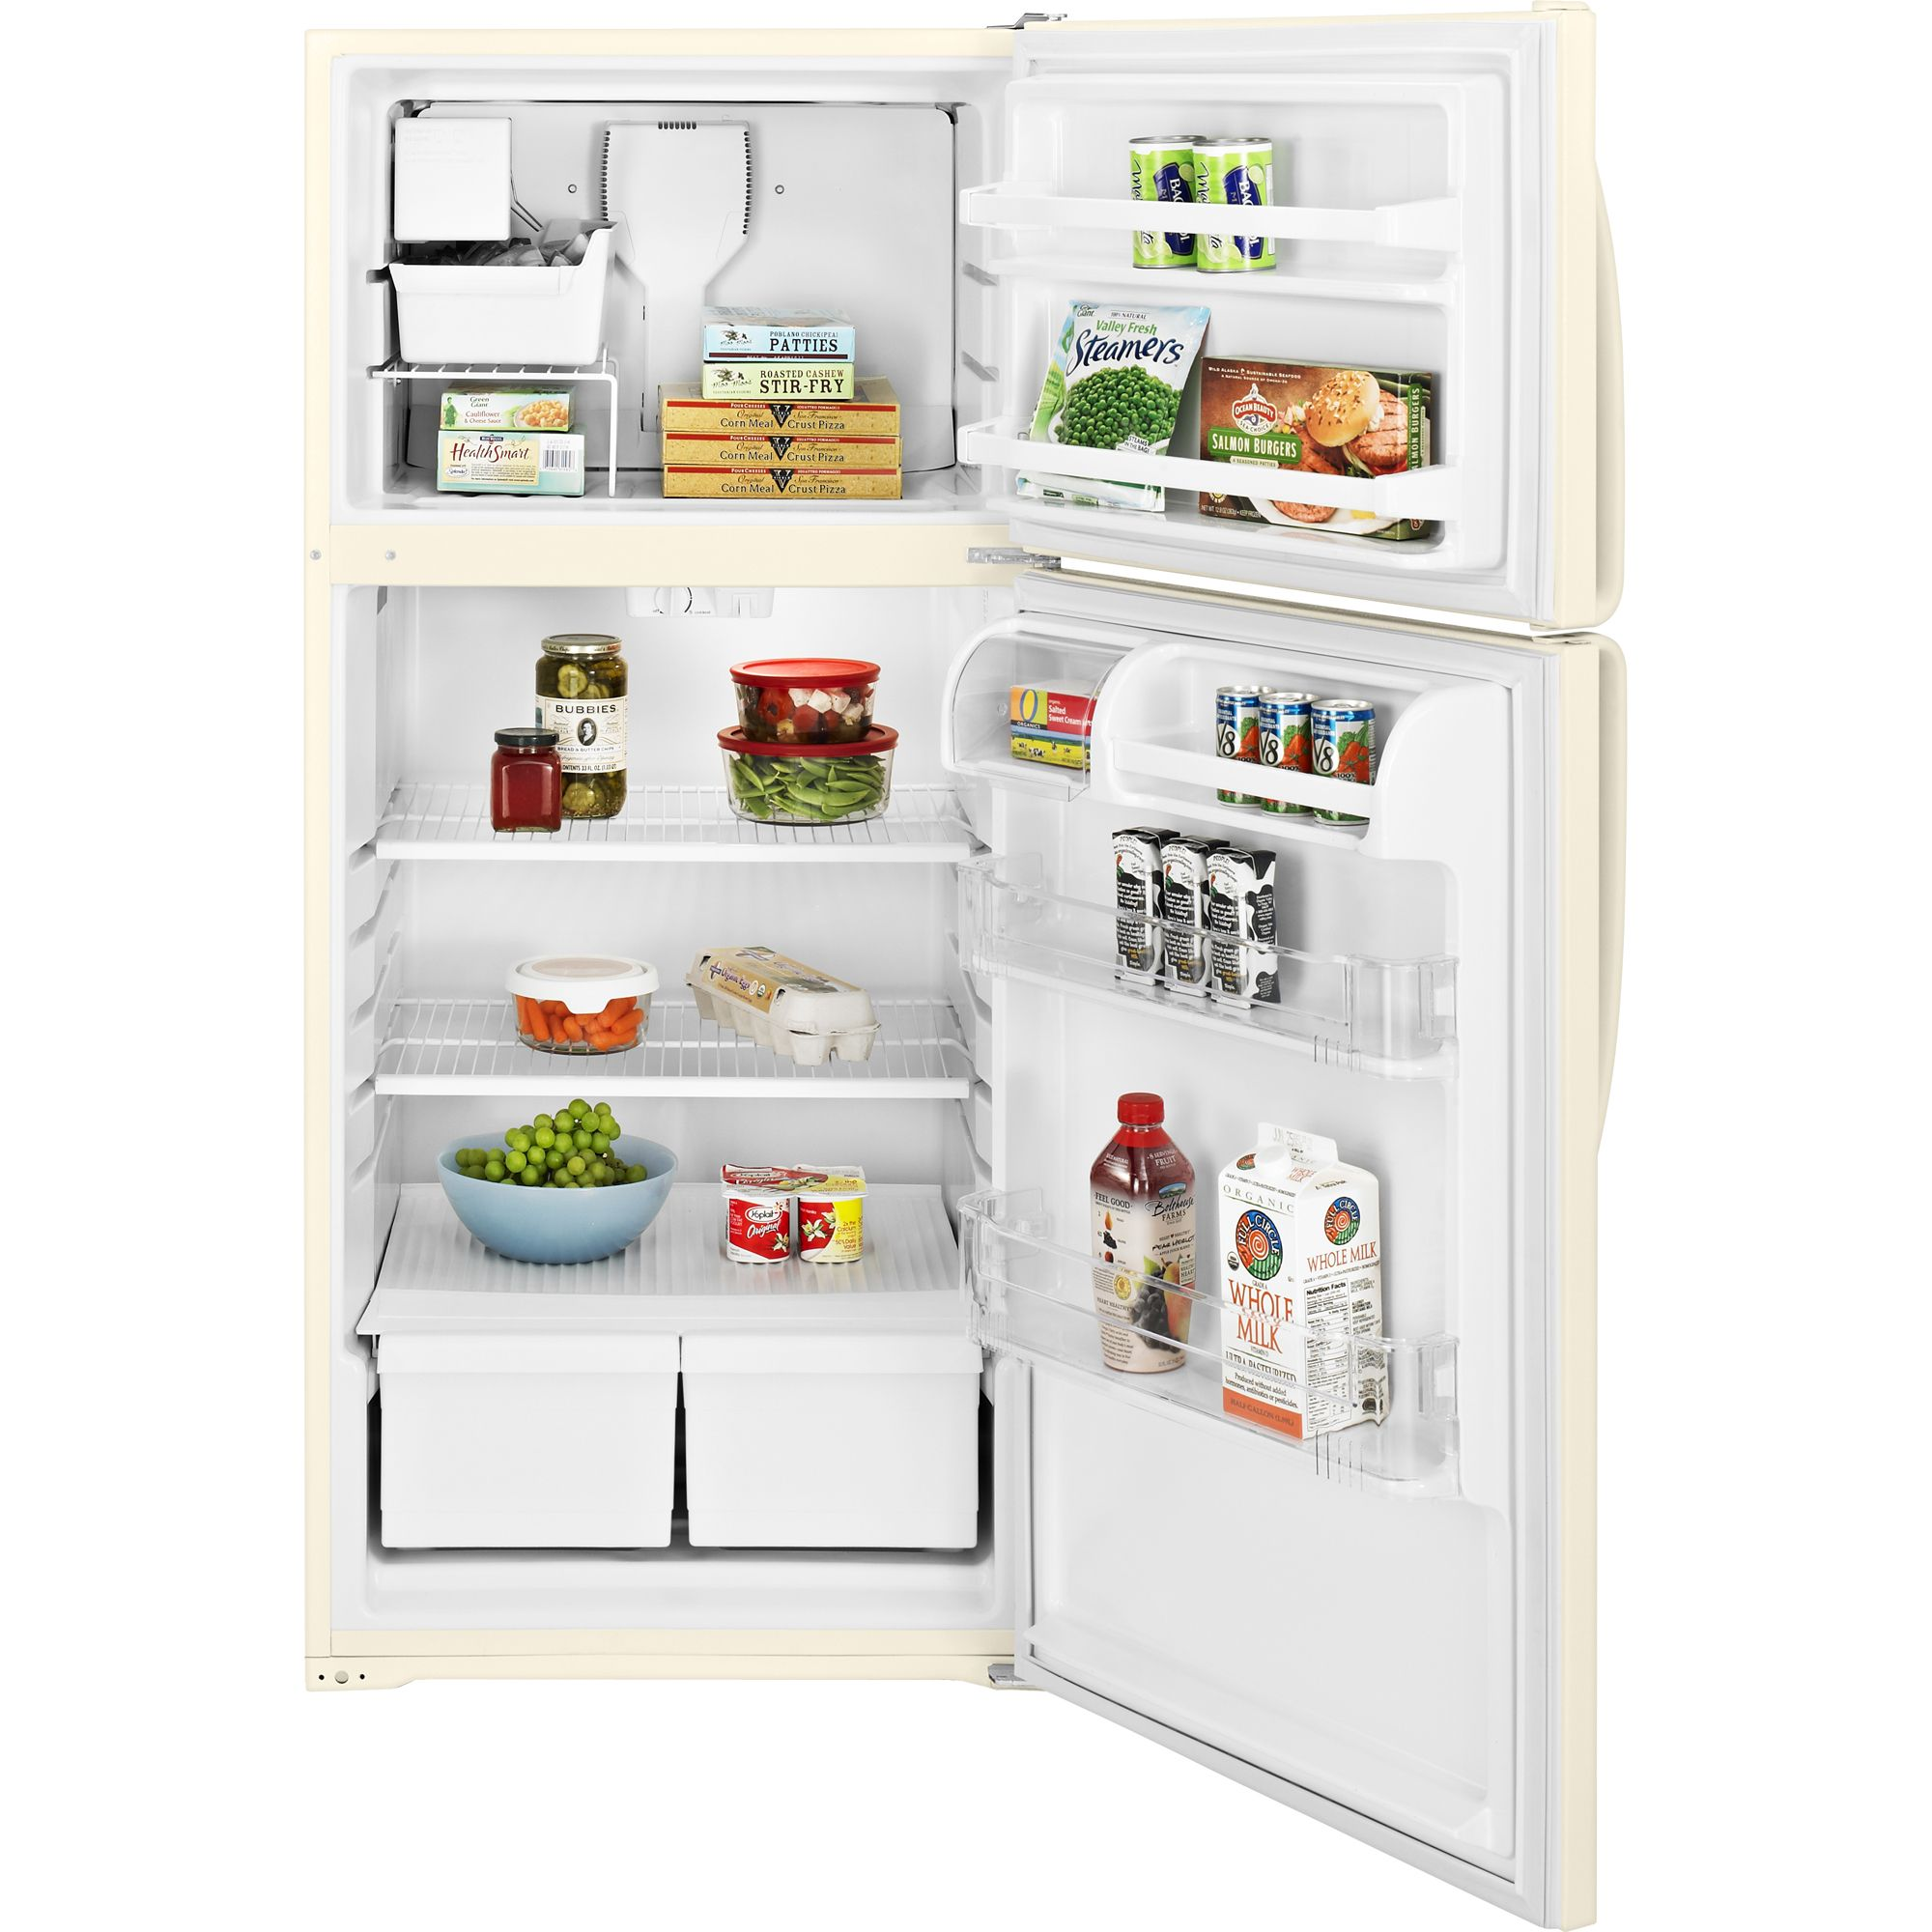 Kenmore 14.4 cu. ft. Top-Freezer Refrigerator